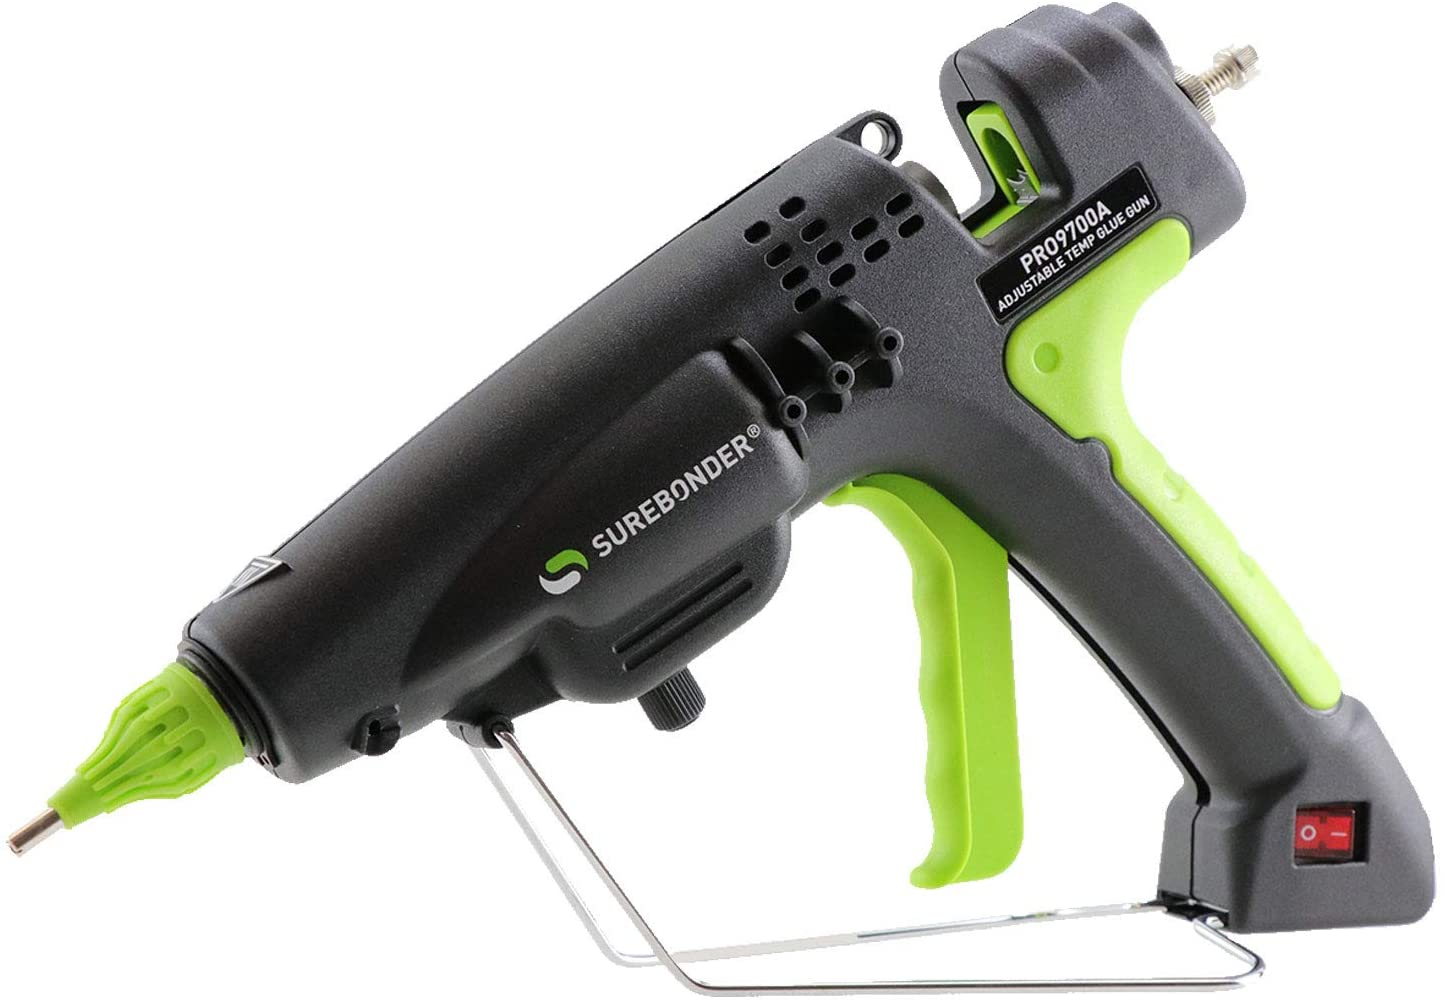 Surebonder 300W Heavy-Duty Hot Glue Gun